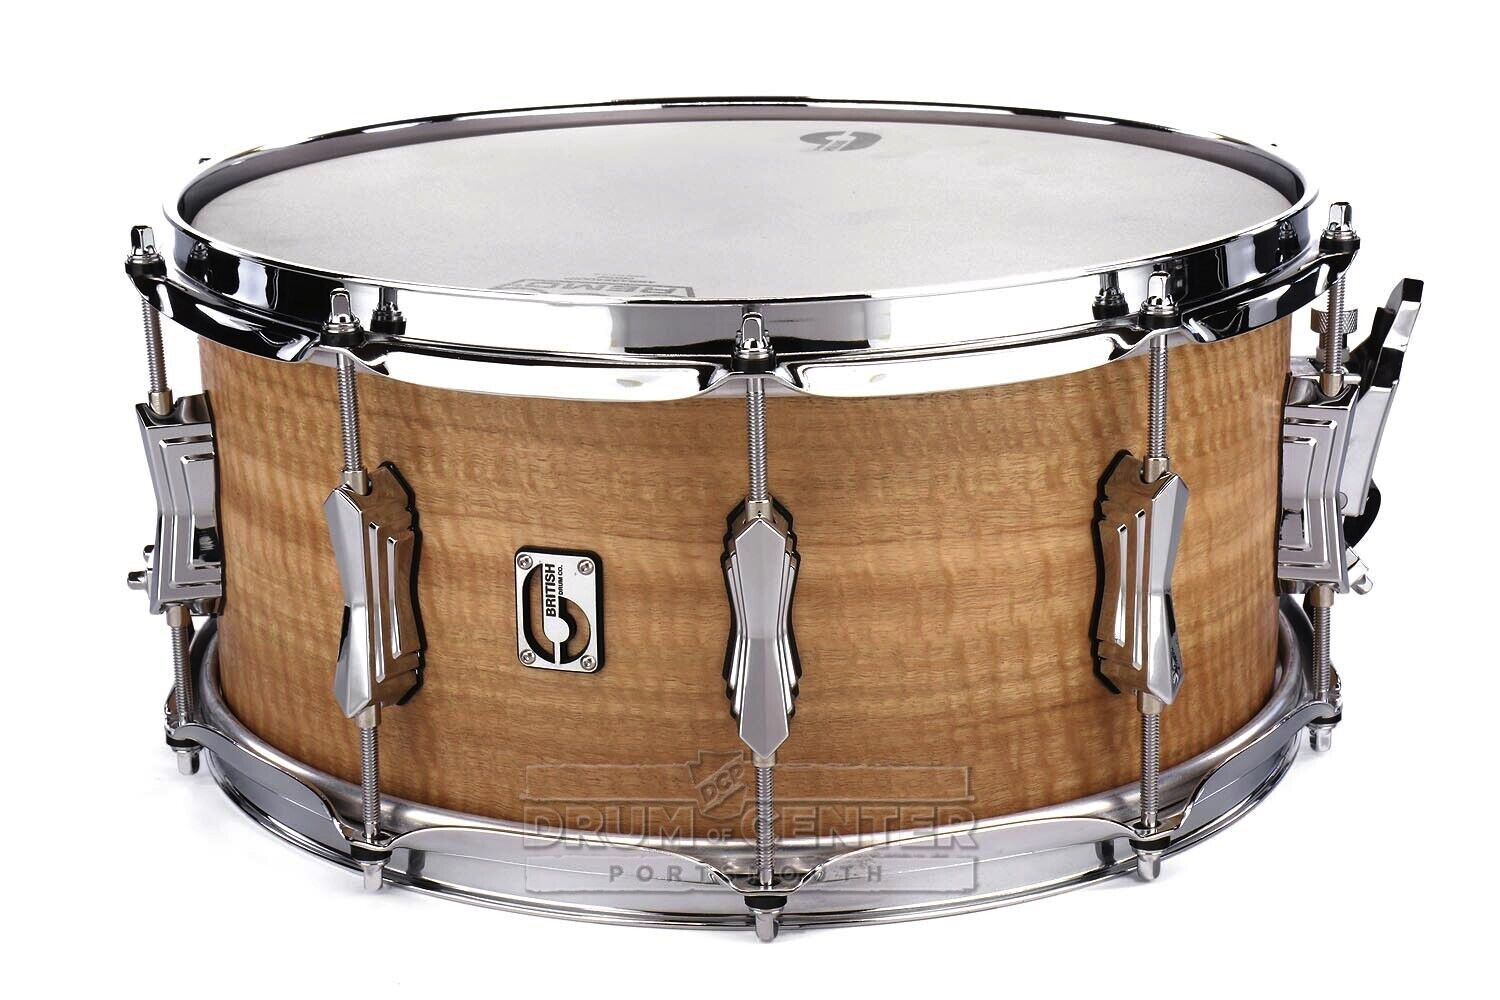 British Drum Company Maverick Snare Drum 14x6.5